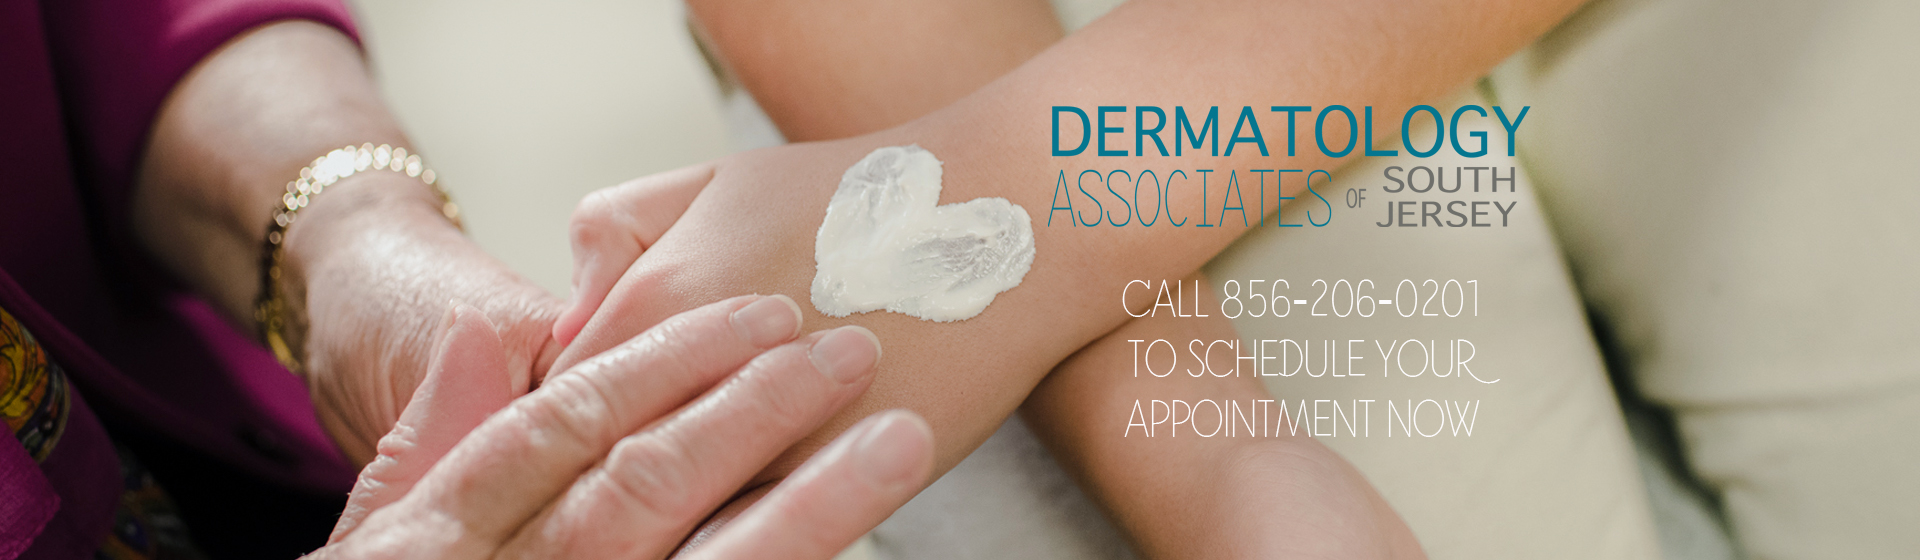 Dermatology Associates of South Jersey – Excellent Patient